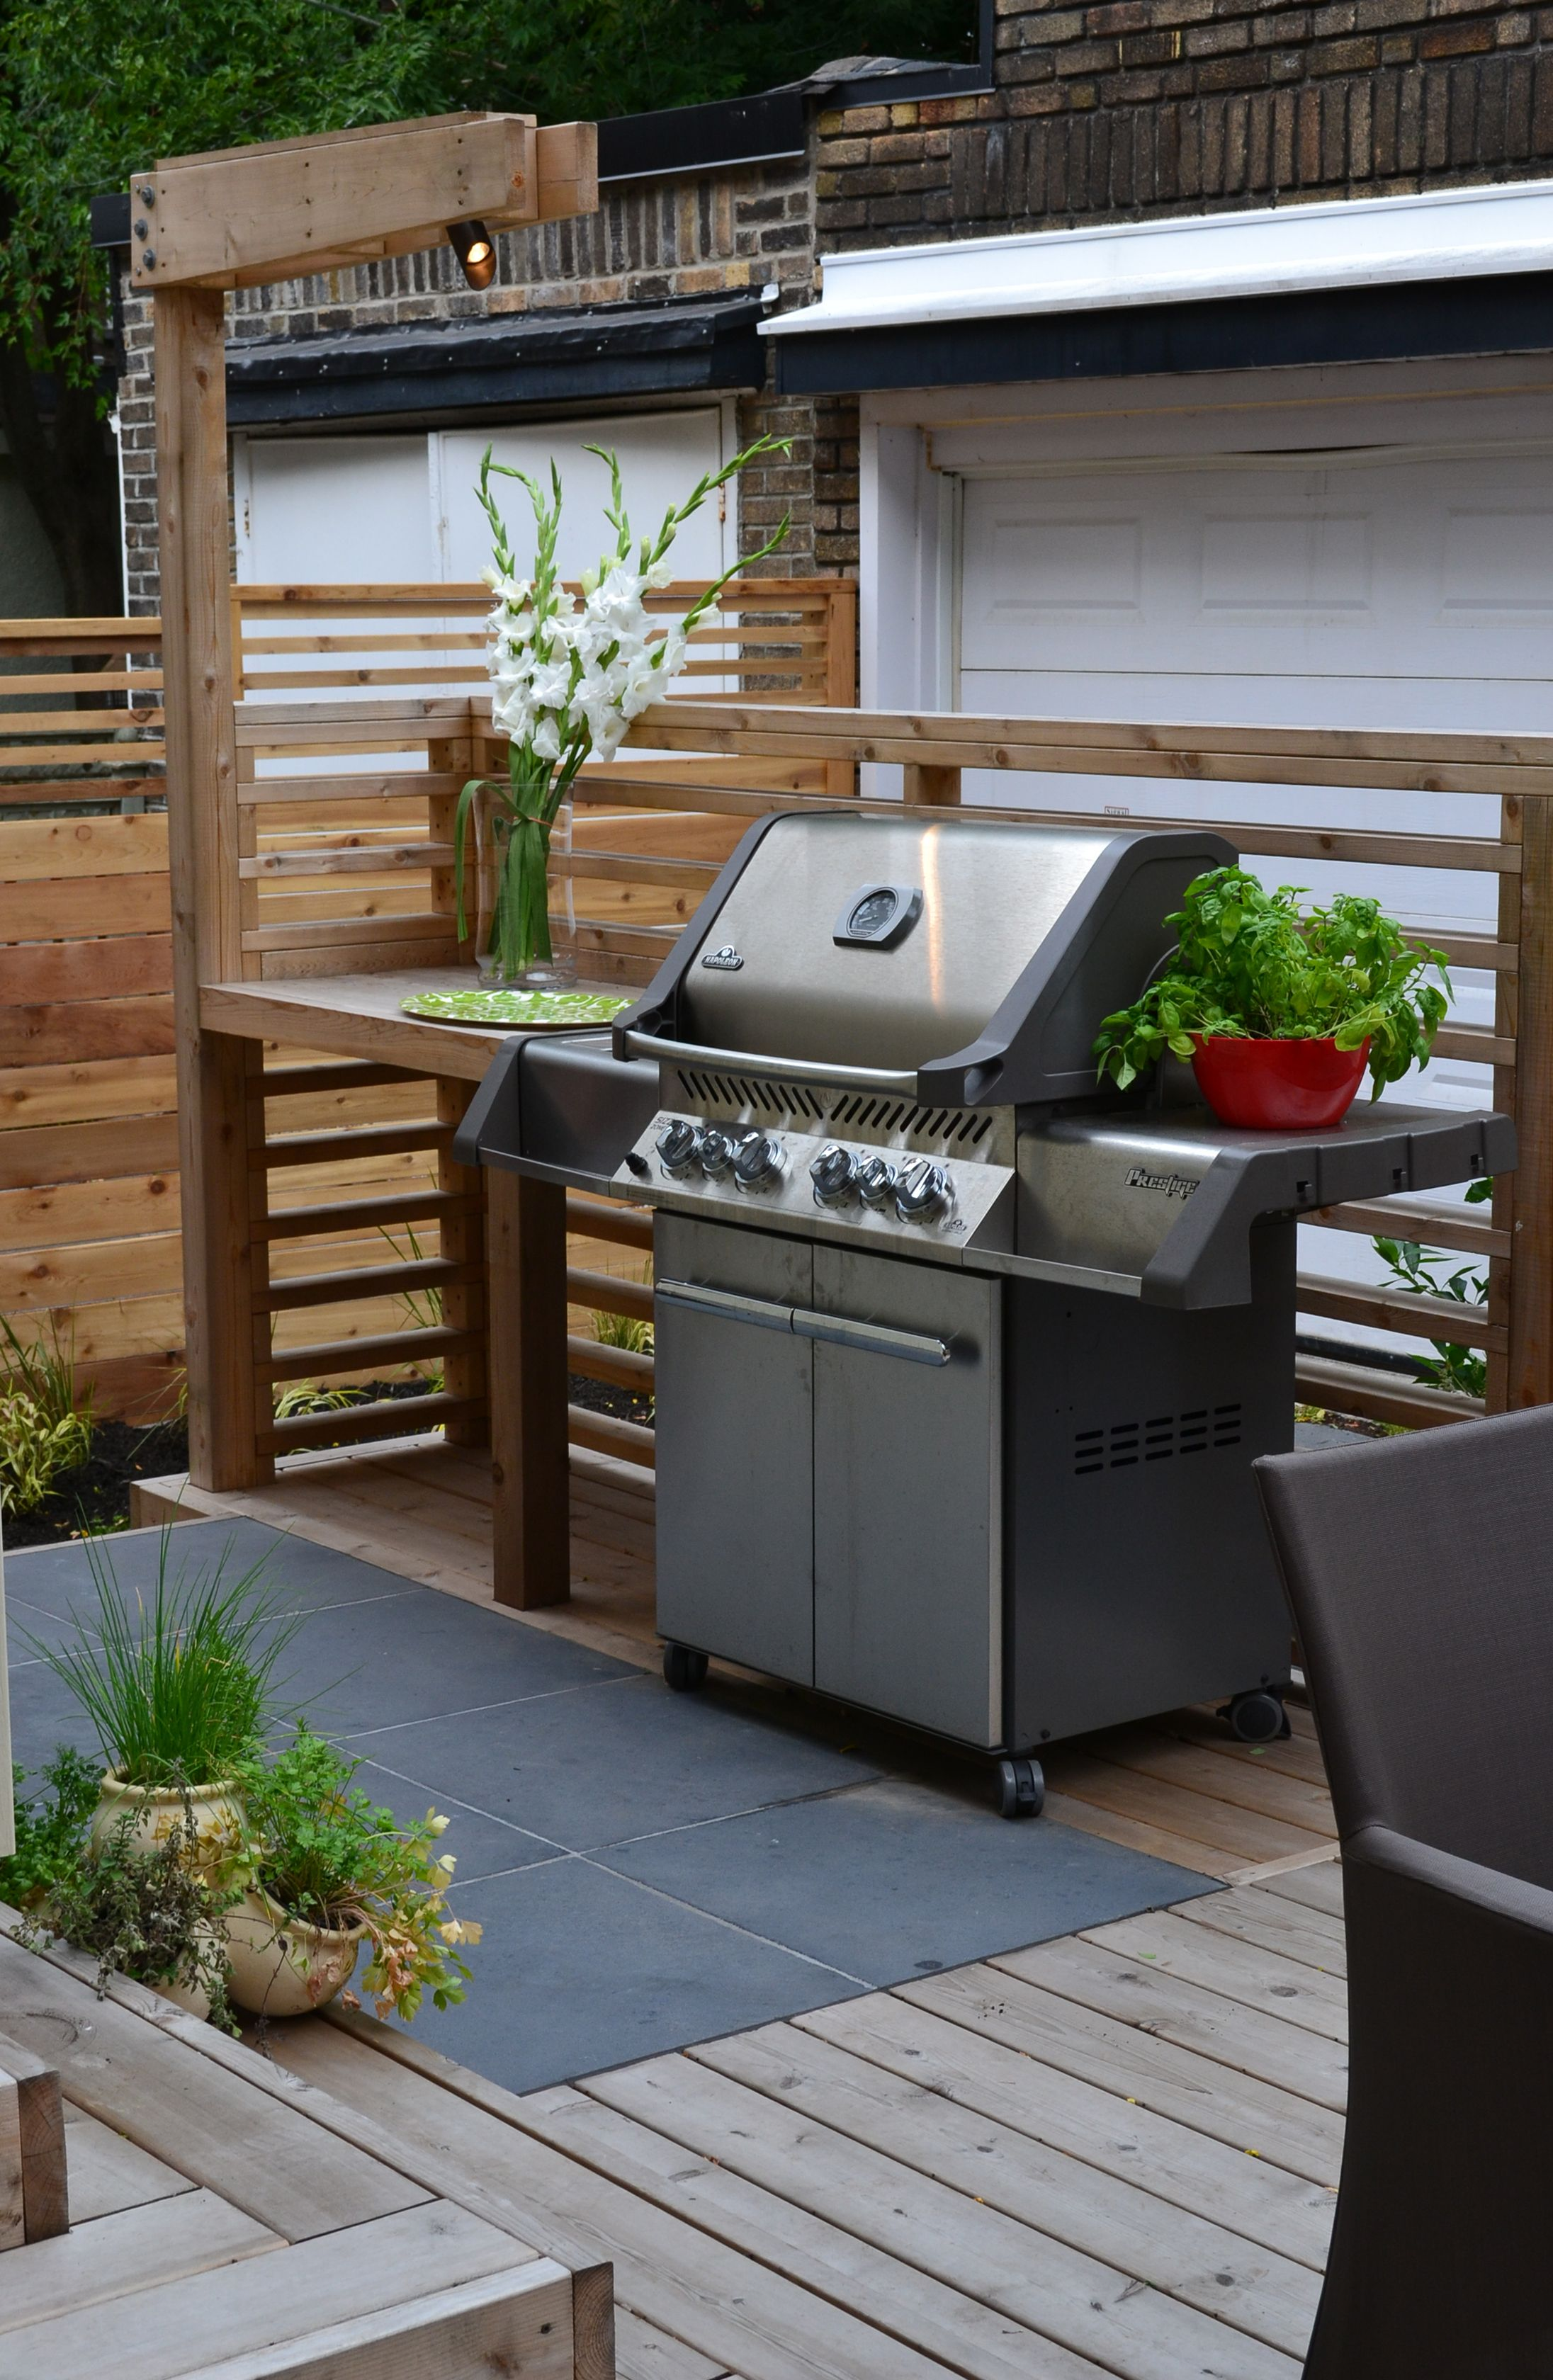 Coin bbq am nagement pinterest cuisine exterieur ext rieur et am nagem - Pinterest amenagement exterieur ...